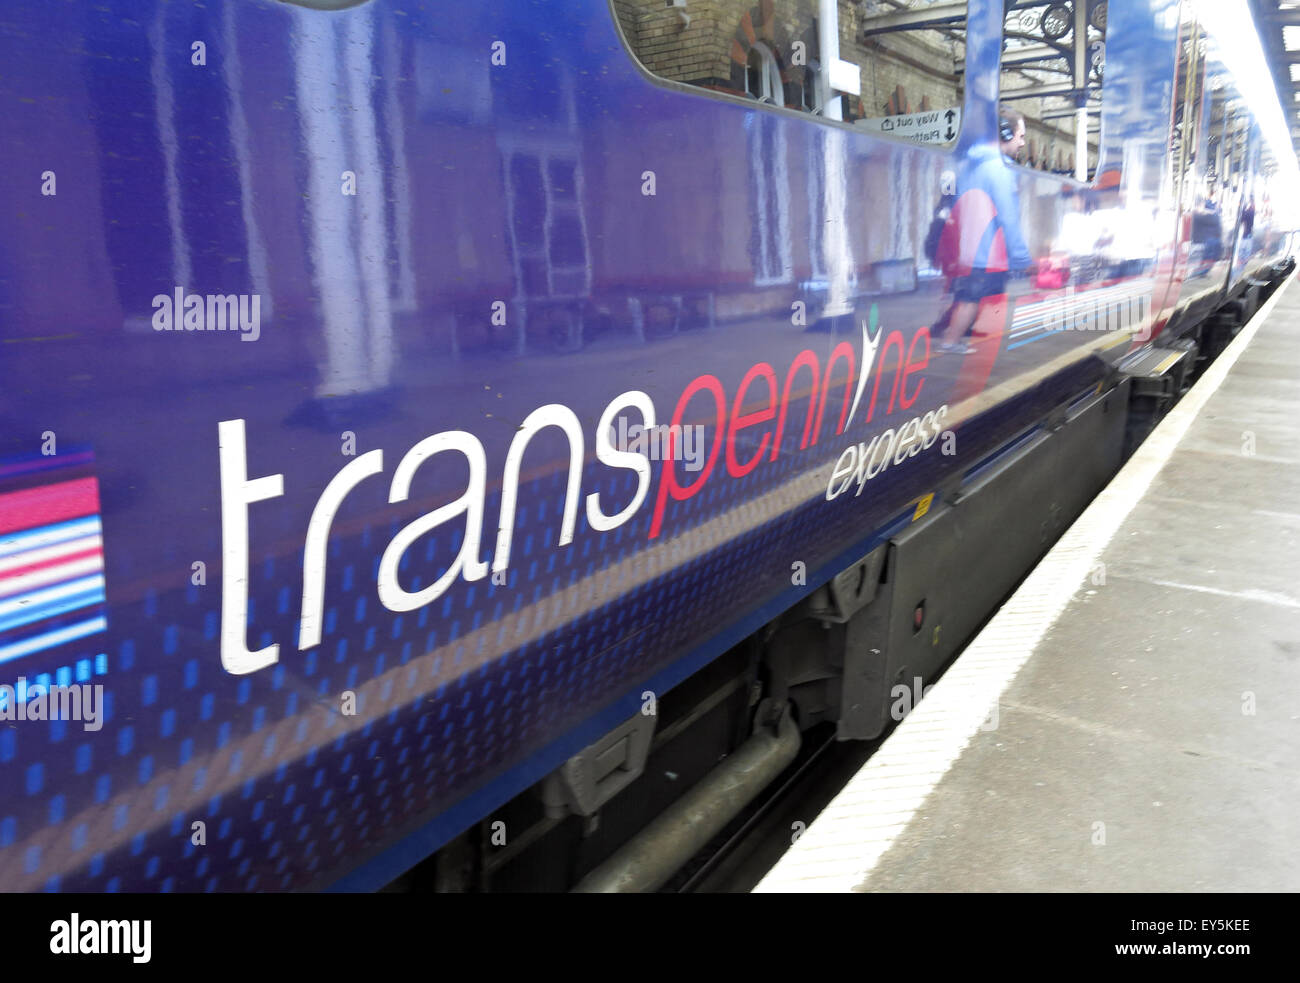 Franchise,rail,railway,transport,logo,express,trans,pennine,trans-pennine,ale,trail,aletrail,real,realale,CAMRA,passenger,reflection,reflected,journey,start,end,arrived,on,station,integrated,selloff,standing,privatisation,central,Cheshire,England UK,Transpennine Express,northern powerhouse,GoTonySmith,region,regional,electrification,diesel,new,old,rolling,stock,Britain,British,clean,trains,long-distance,long,distance,infrastructure,multiple-unit,multiple,unit,DMU,sustainable,travel,traveling,travelling,United,Kingdom,aletrain,ale-train,Stalybridge,Greenfield,Marsden,Slaithwaite,Huddersfield,Mirfield,Dewsbury,Batley,Trans-pennine Express,Rolling Stock,United Kingdom,Buy Pictures of,Buy Images Of